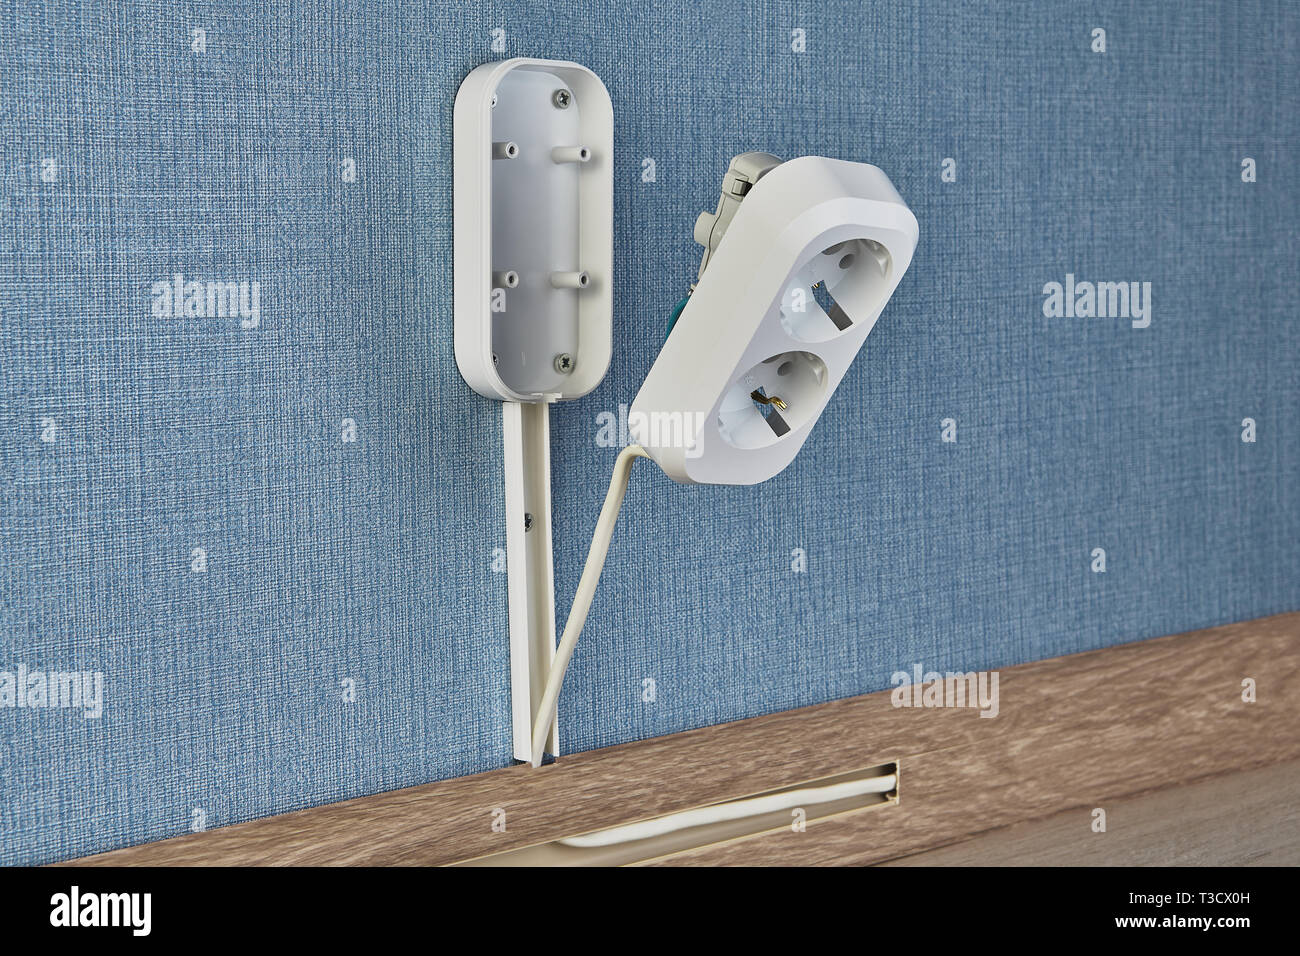 Amazing Residential Electrical Wiring Stock Photos Residential Electrical Wiring 101 Eumquscobadownsetwise Assnl